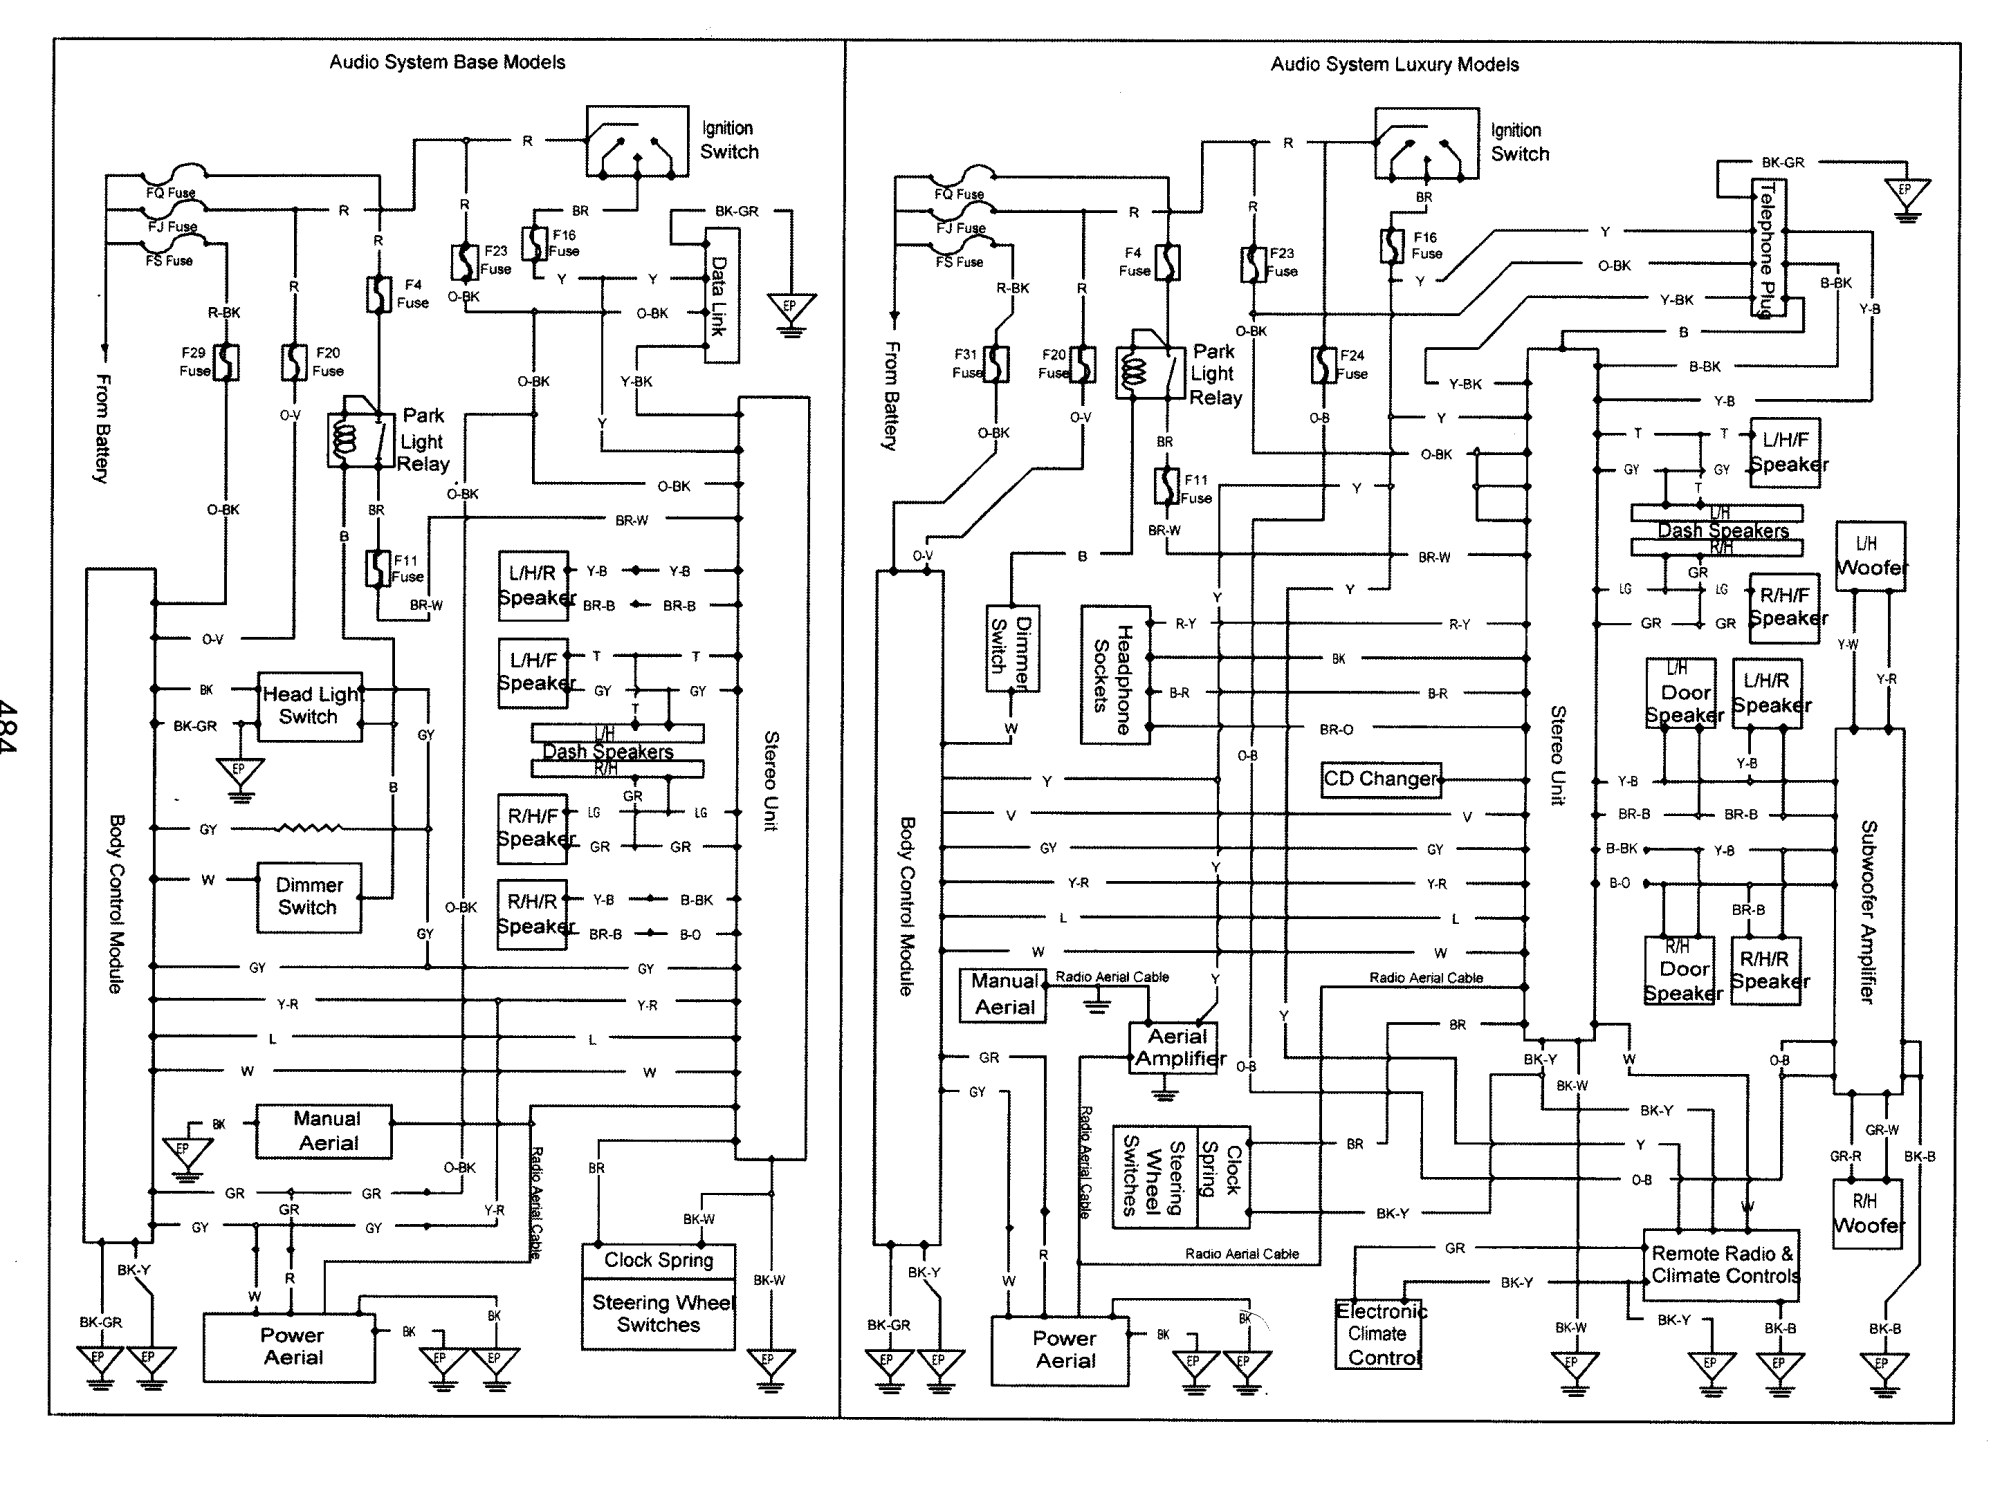 hight resolution of trailer wiring diagram vz commodore wiring diagrams schema wiring circuits trailer wiring diagram vz commodore wiring